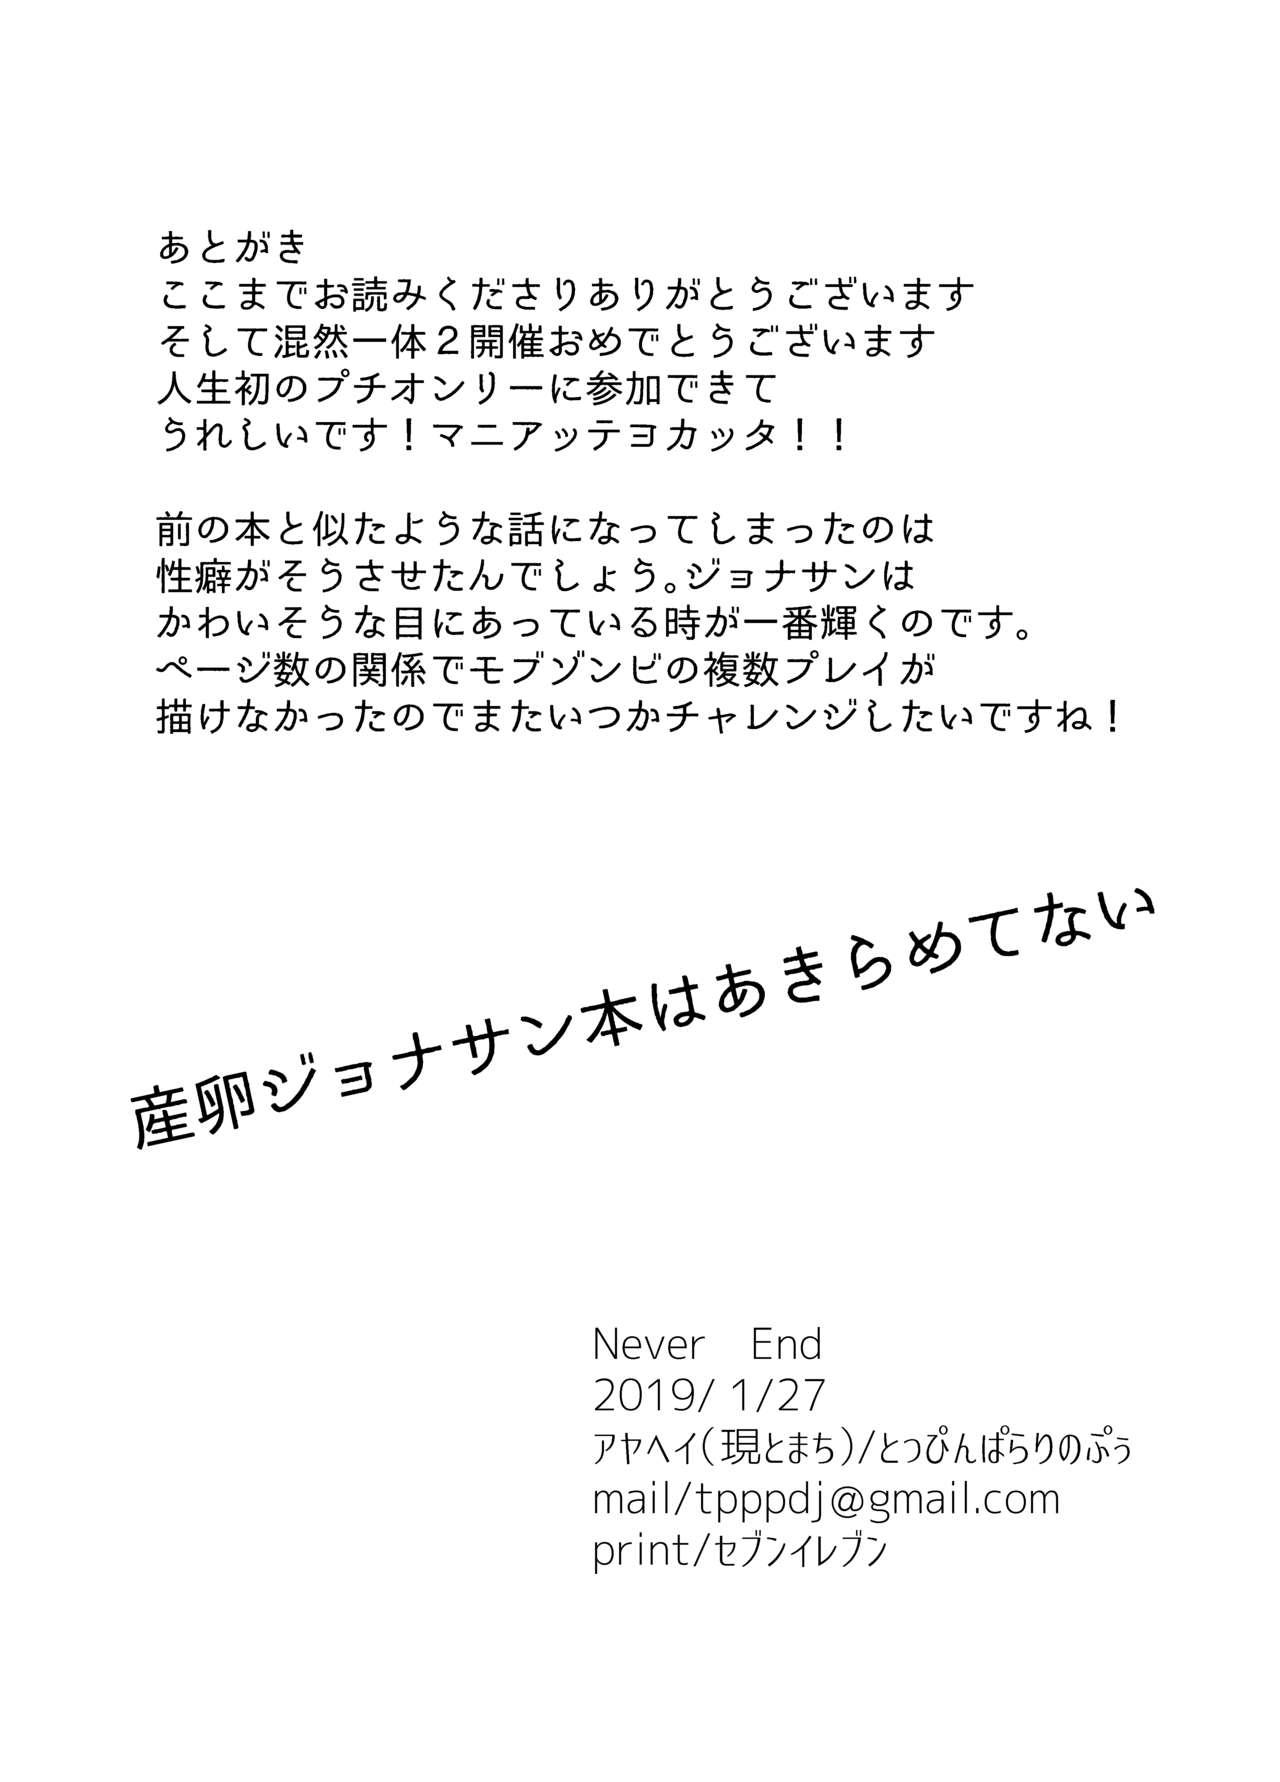 Never End 16